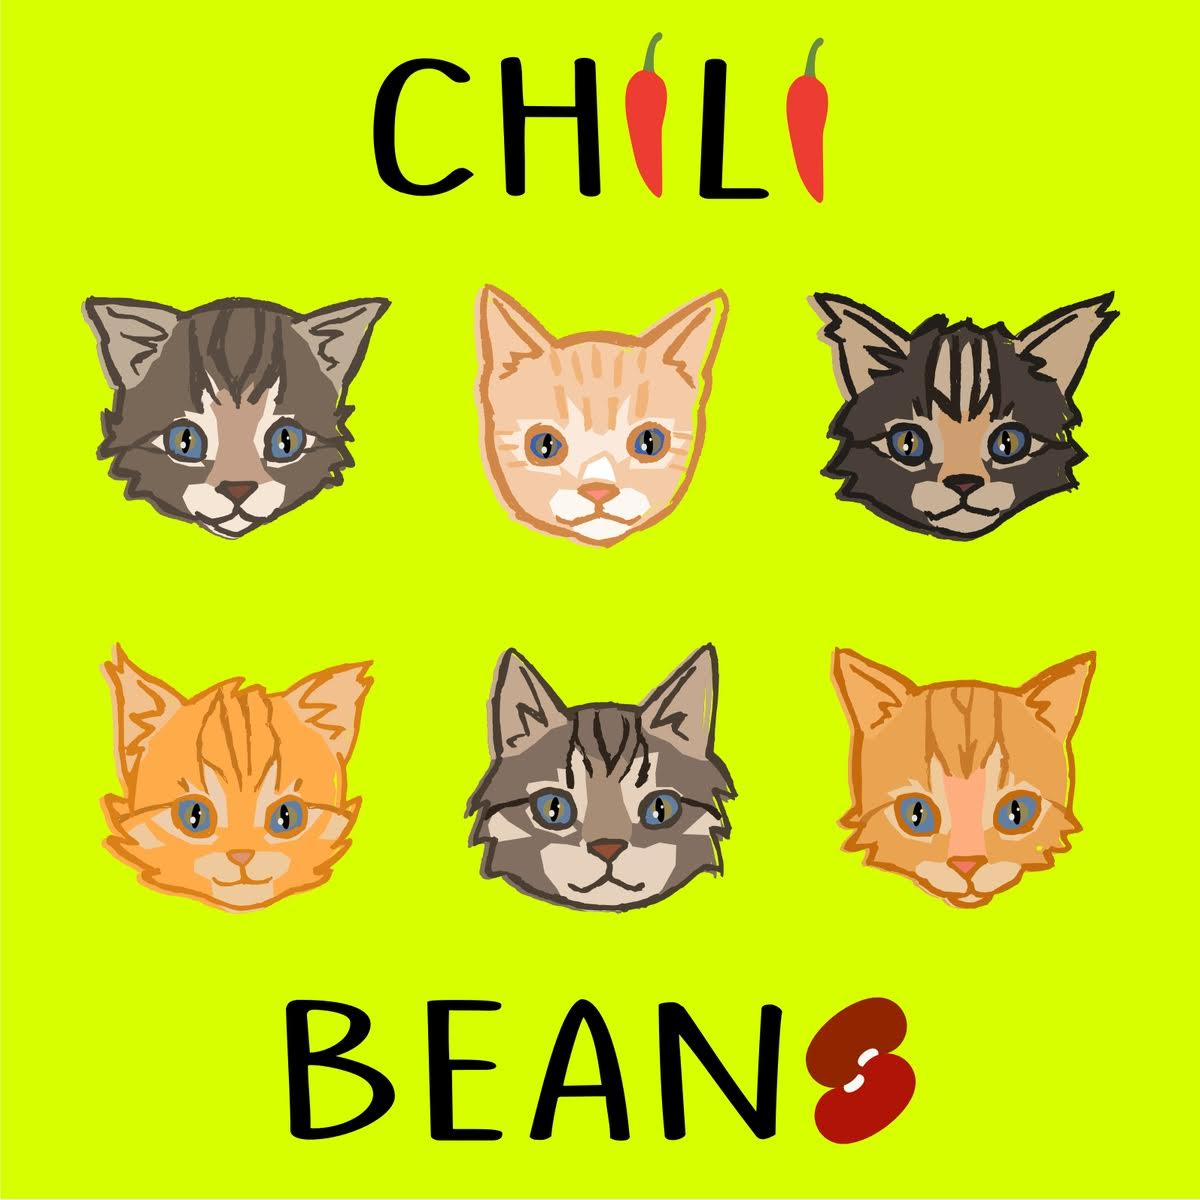 Chili Beans by StarMochaLatte